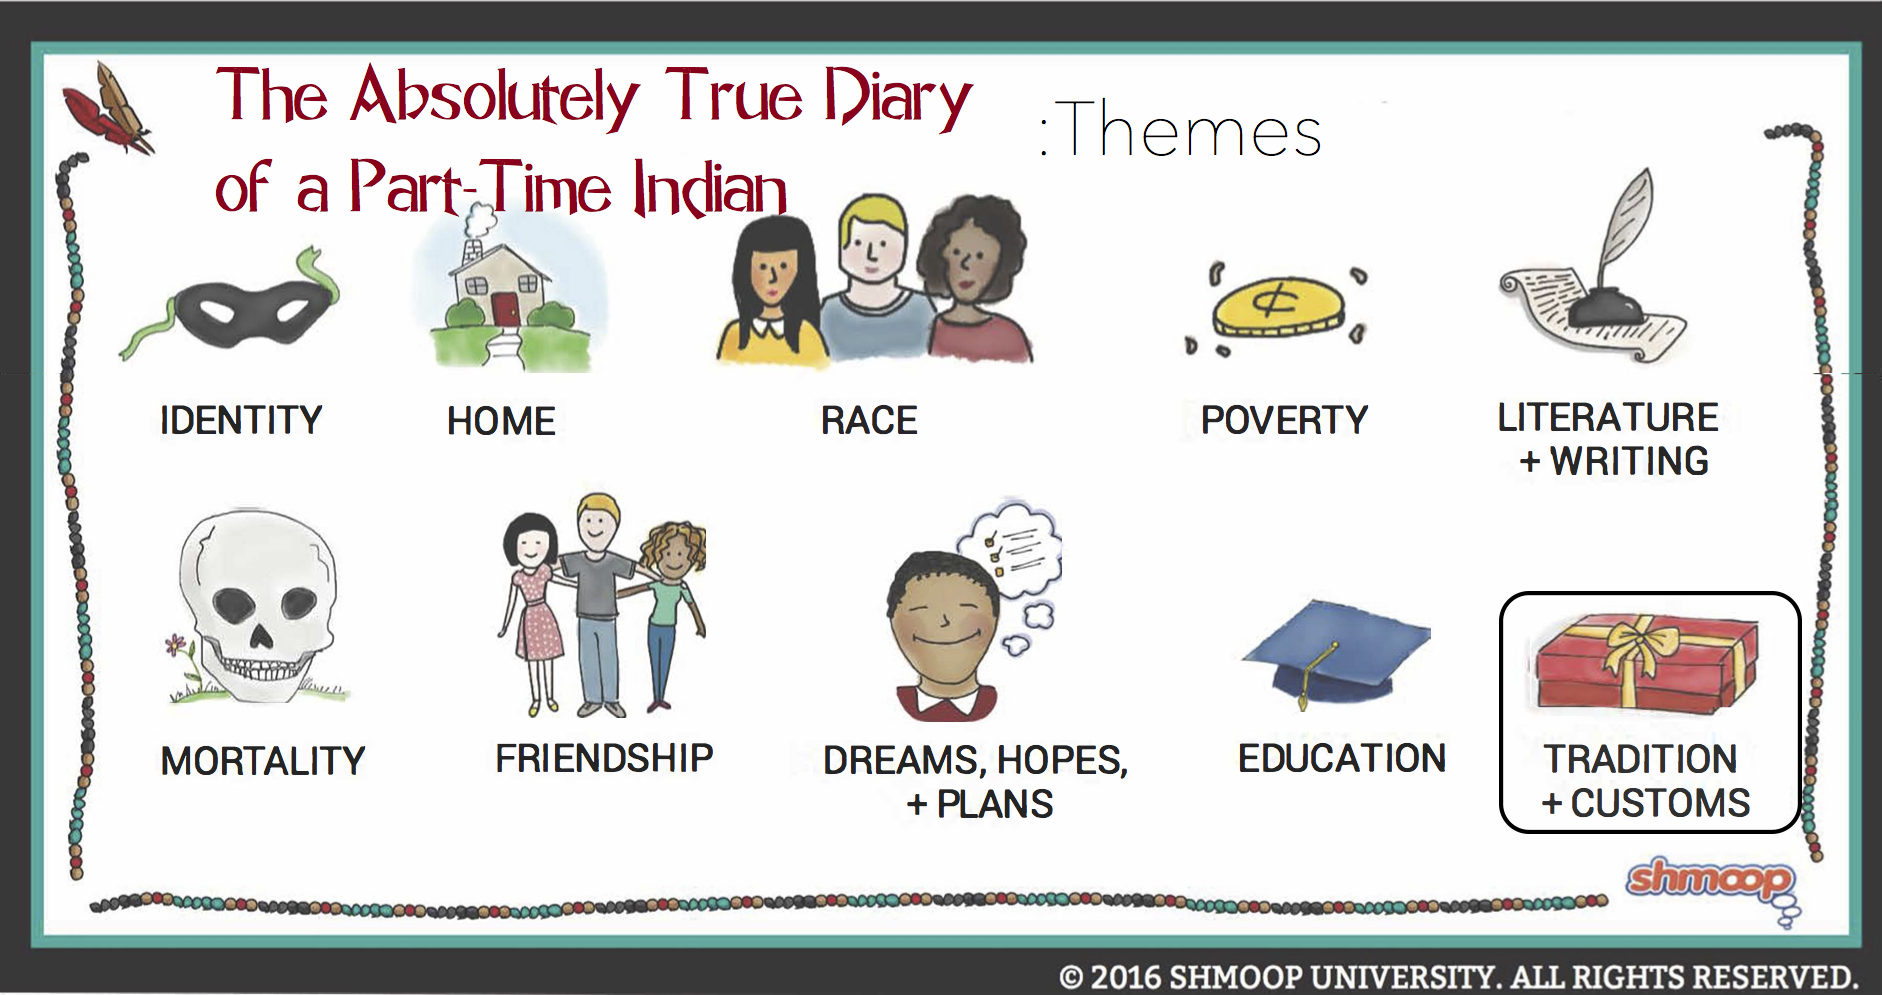 Absolutely True Diary Of A Part Time Indian Quotes Interesting The Absolutely True Diary Of A Parttime Indian Theme Of Tradition .